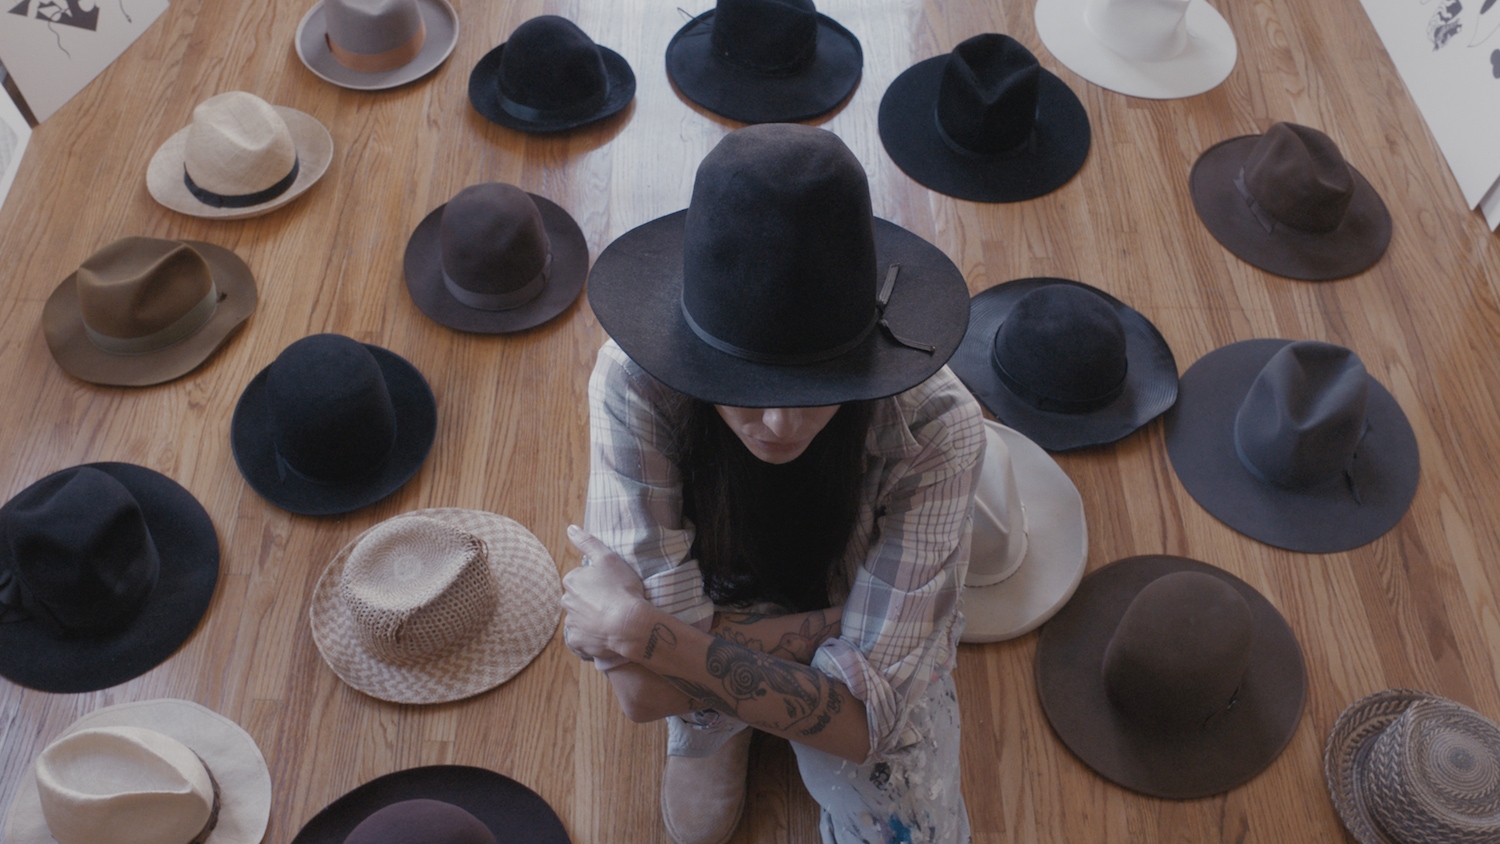 The artist sits among her impressive collection of hats.